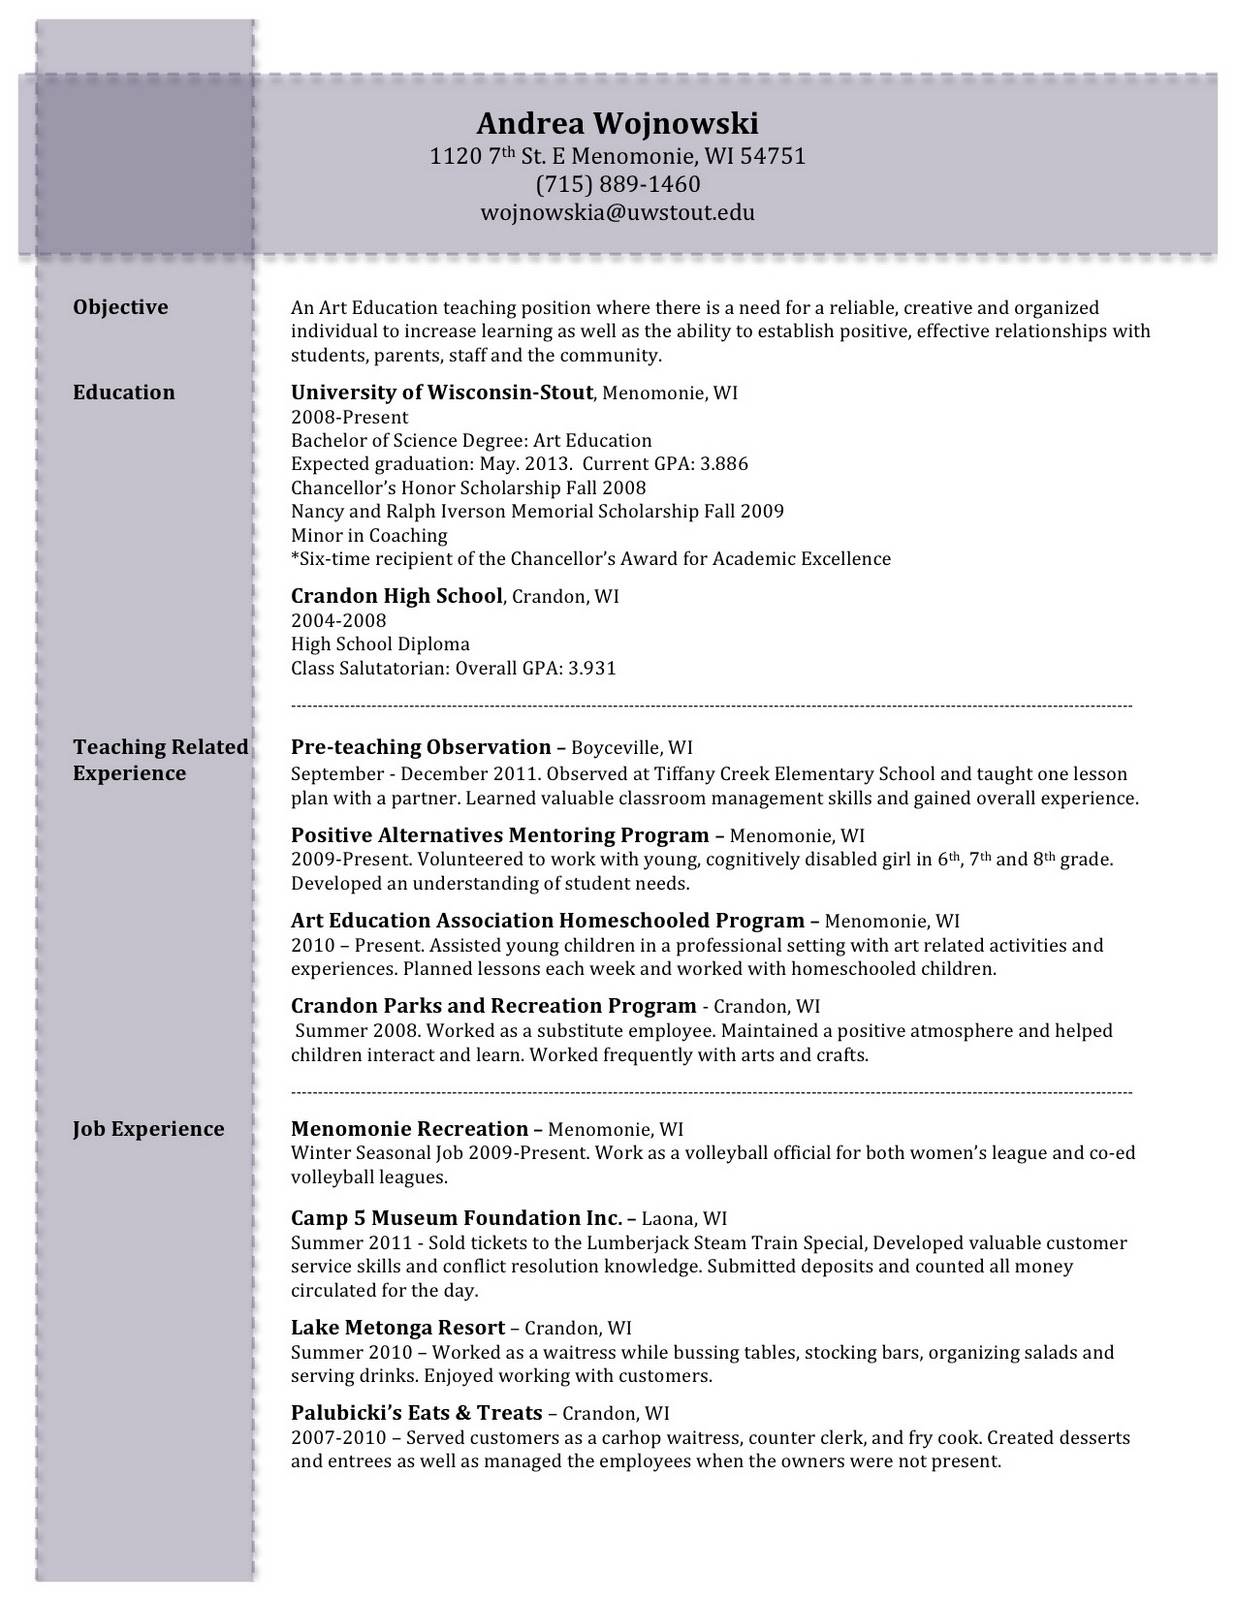 courtesy masters cv example create your effective personal cv bit journal